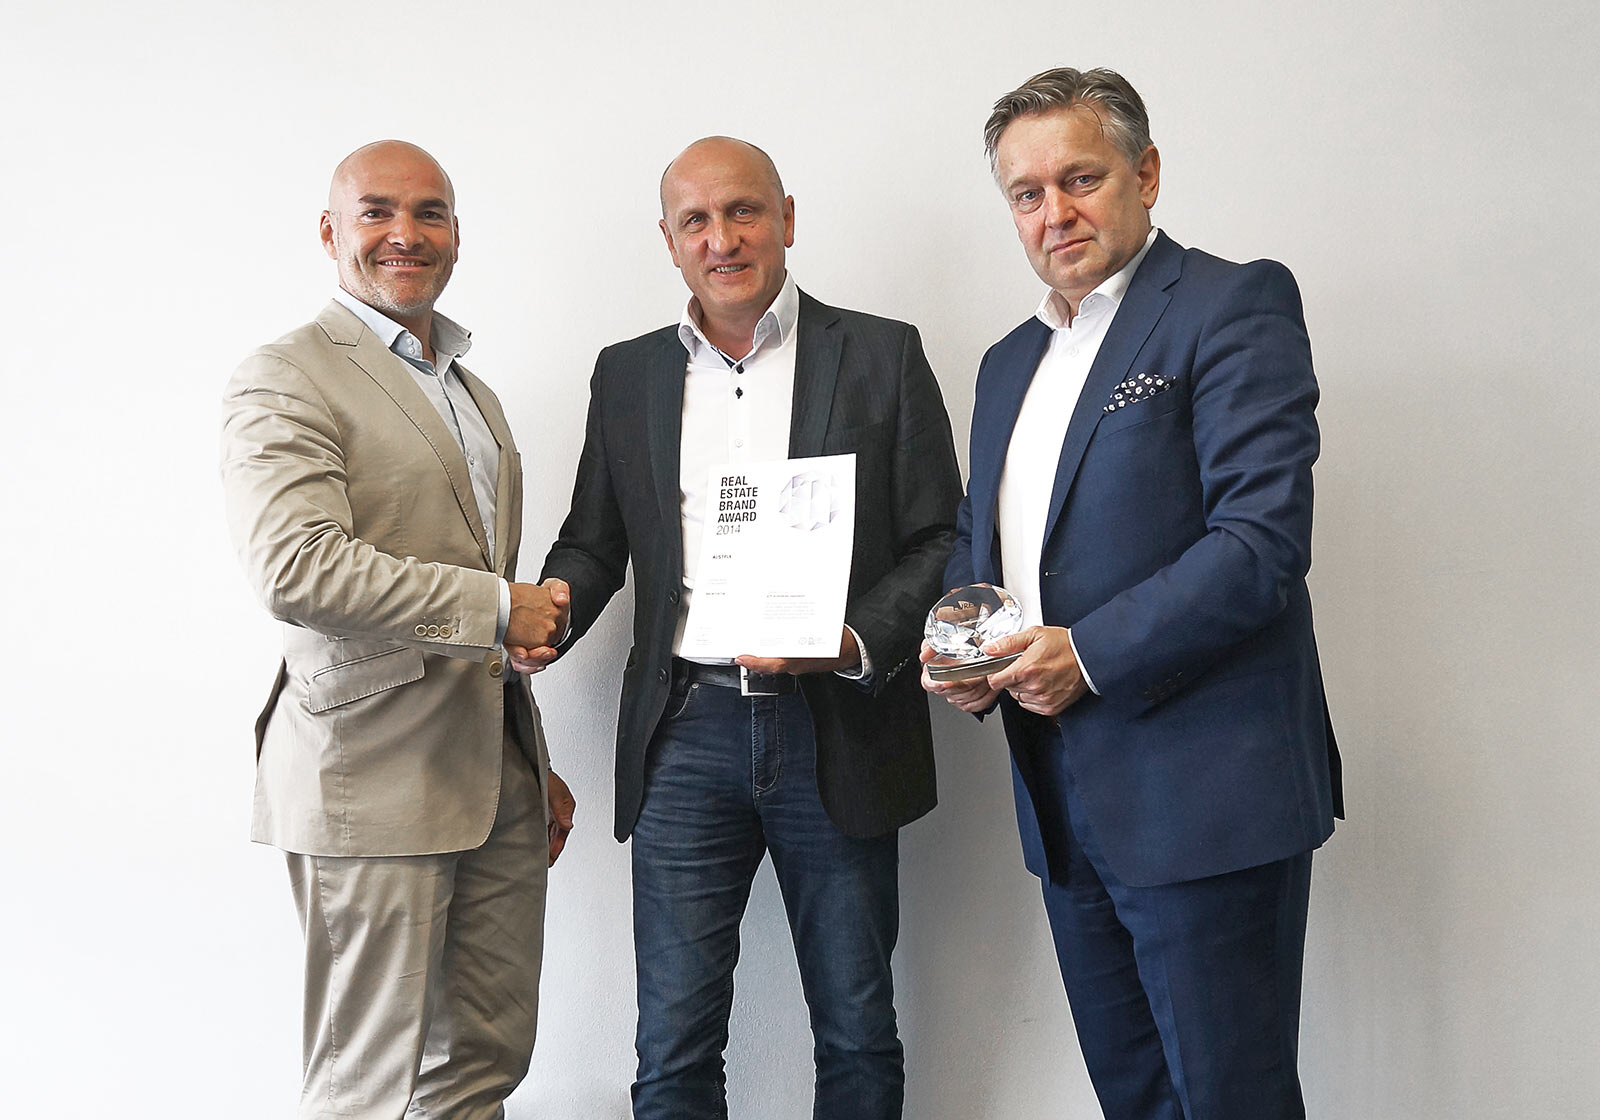 Harald Steiner gives the Real Estate Brand award to Horst Reiner and Dario Travas. Photo: ATP